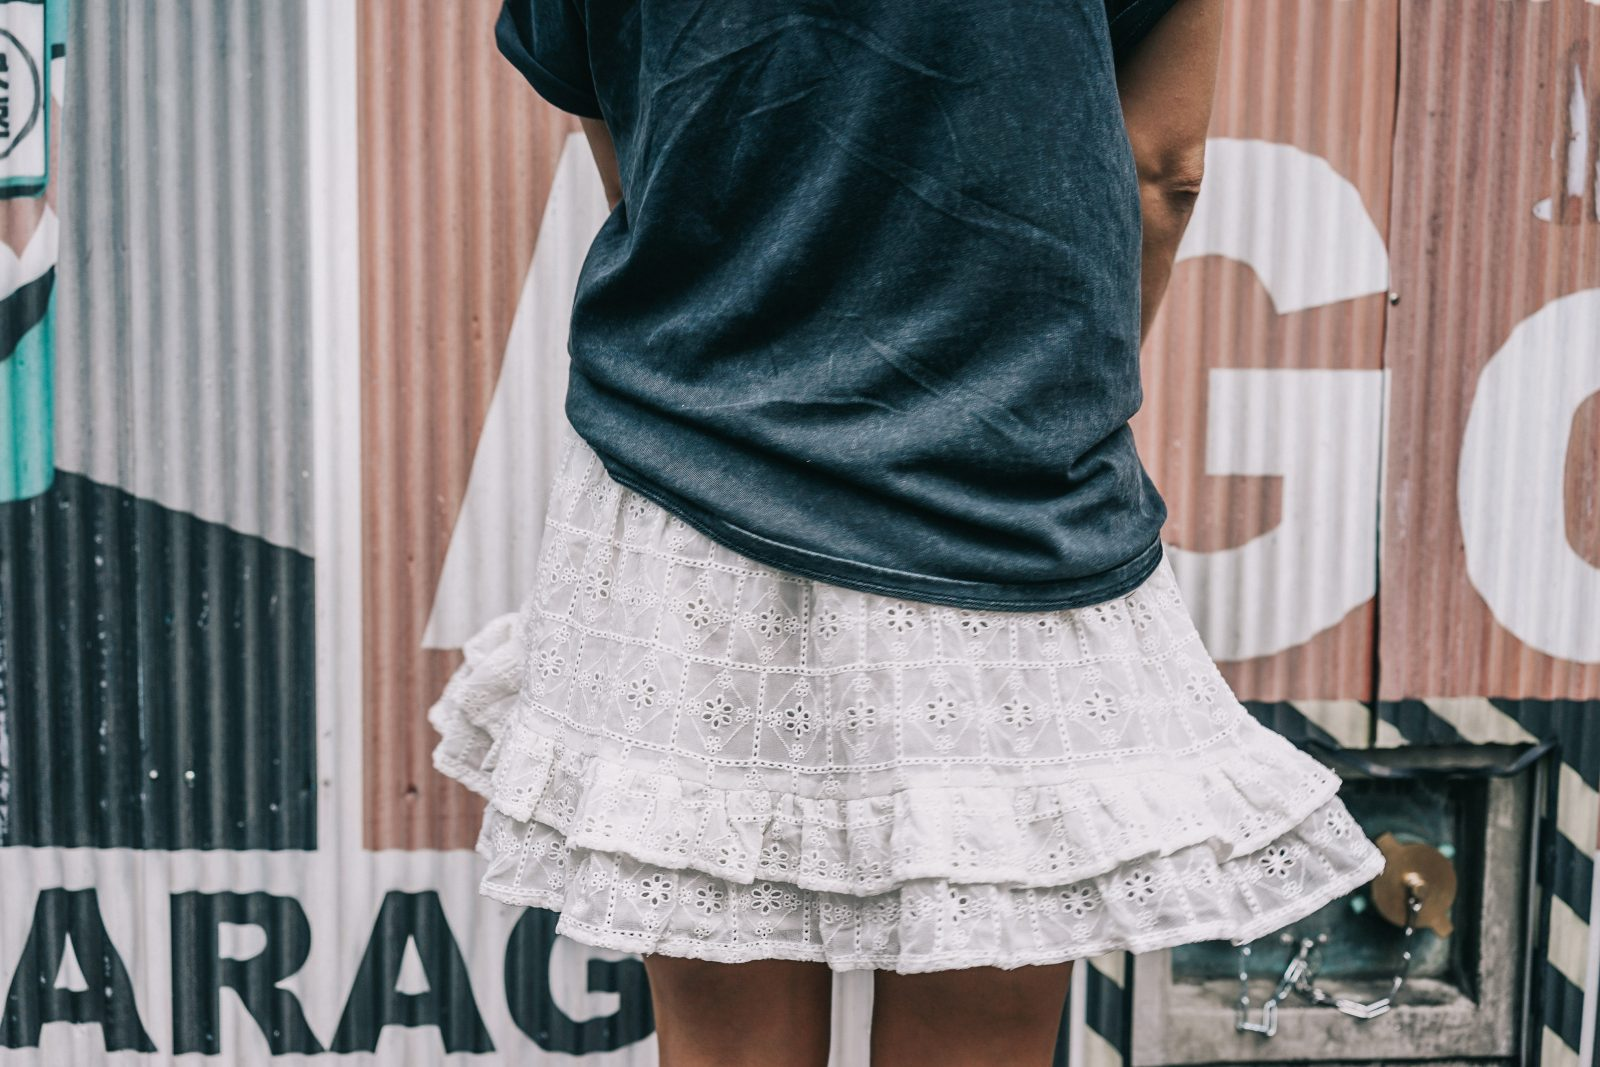 Tokyo_Travel_Guide-Outfit-Collage_Vintage-Street_Style-Top_Mettalica-Brandy_Melville-White_Skirt-Chanel_Vintage-Sneakers-21